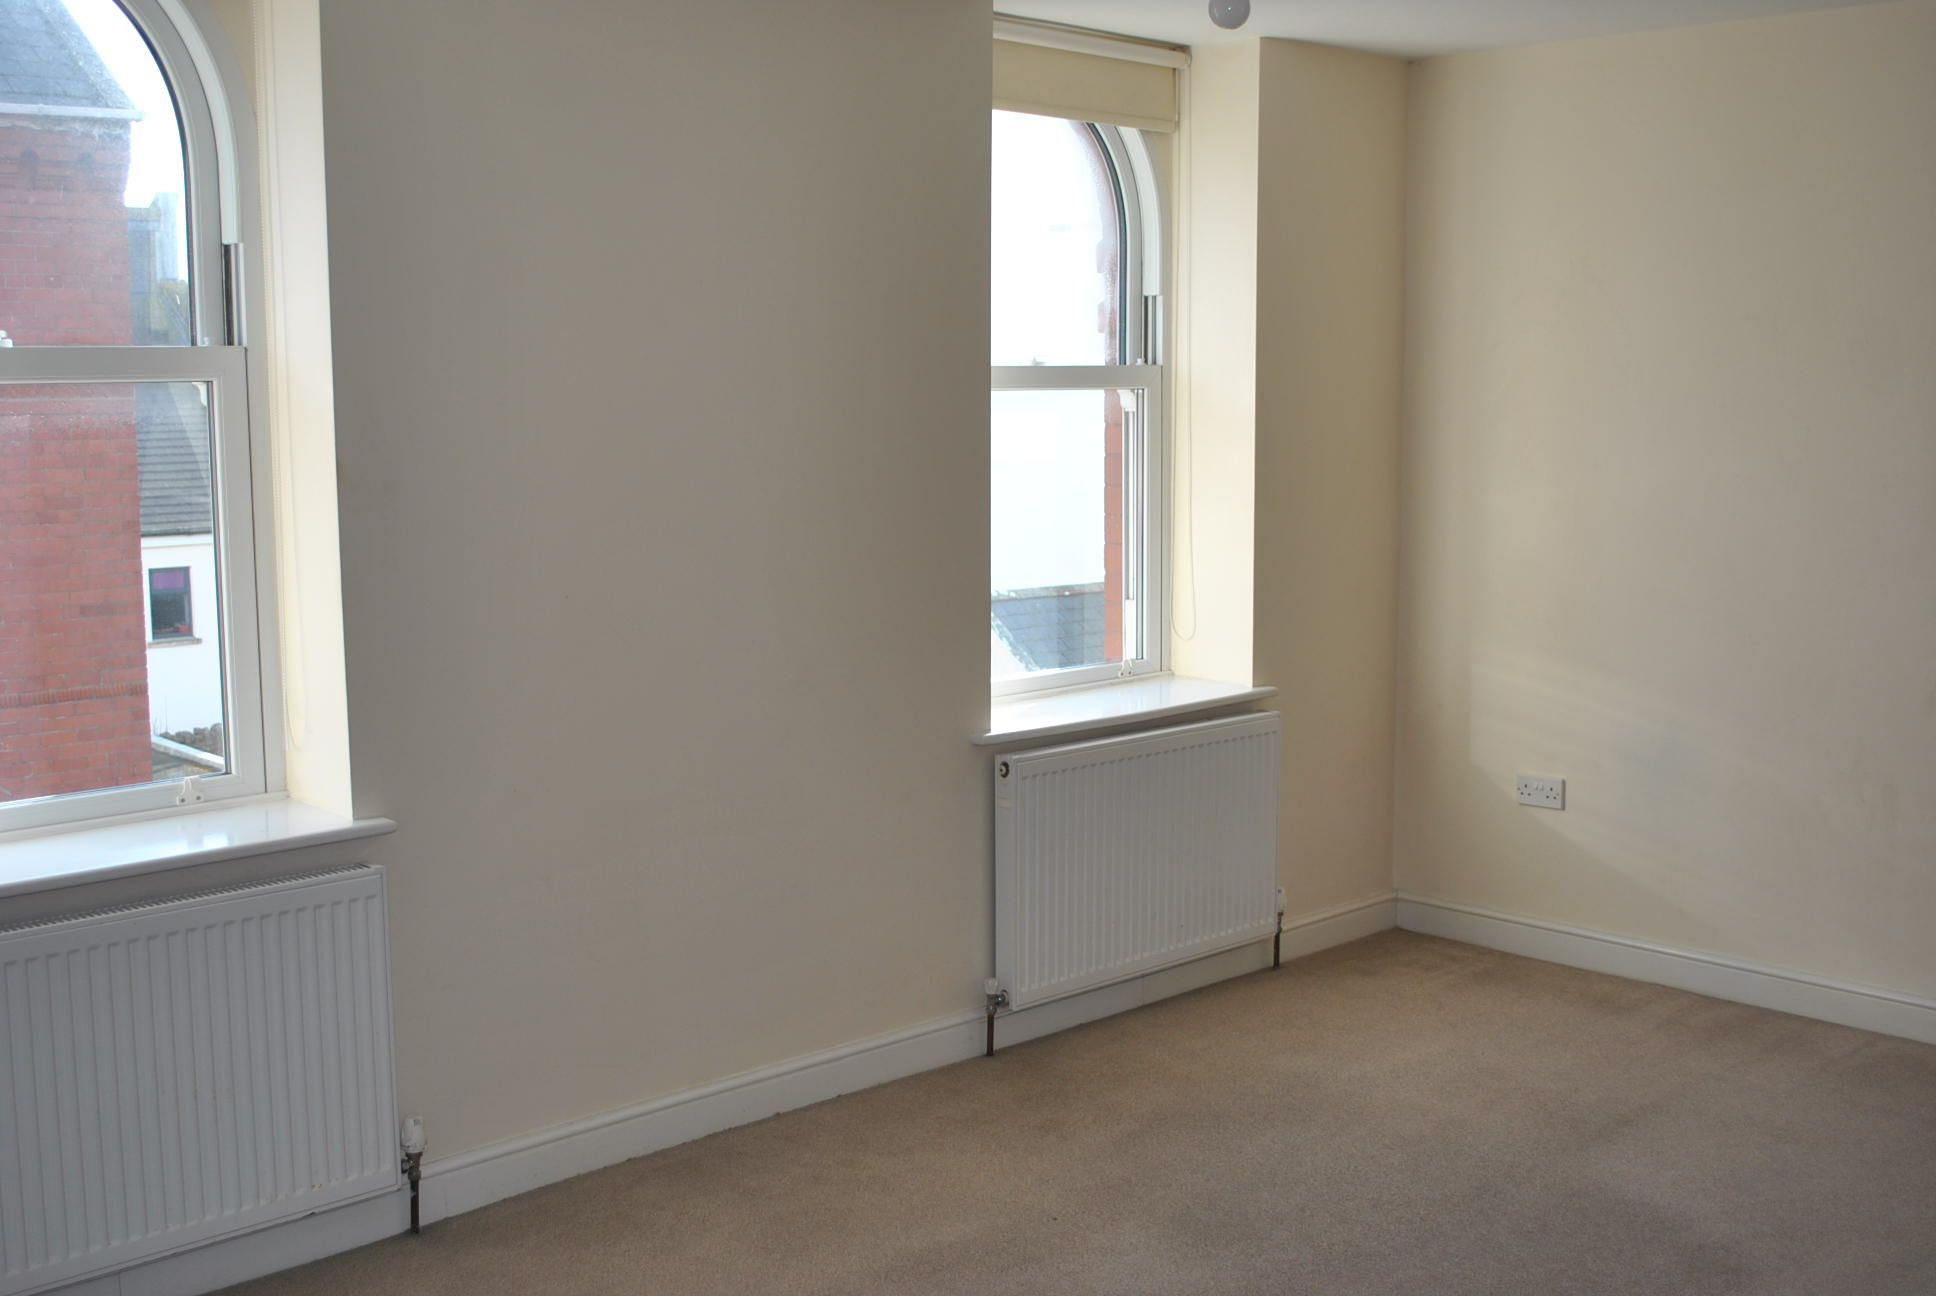 1 bedroom apartment flat/apartment Let in Port St Mary - Property photograph